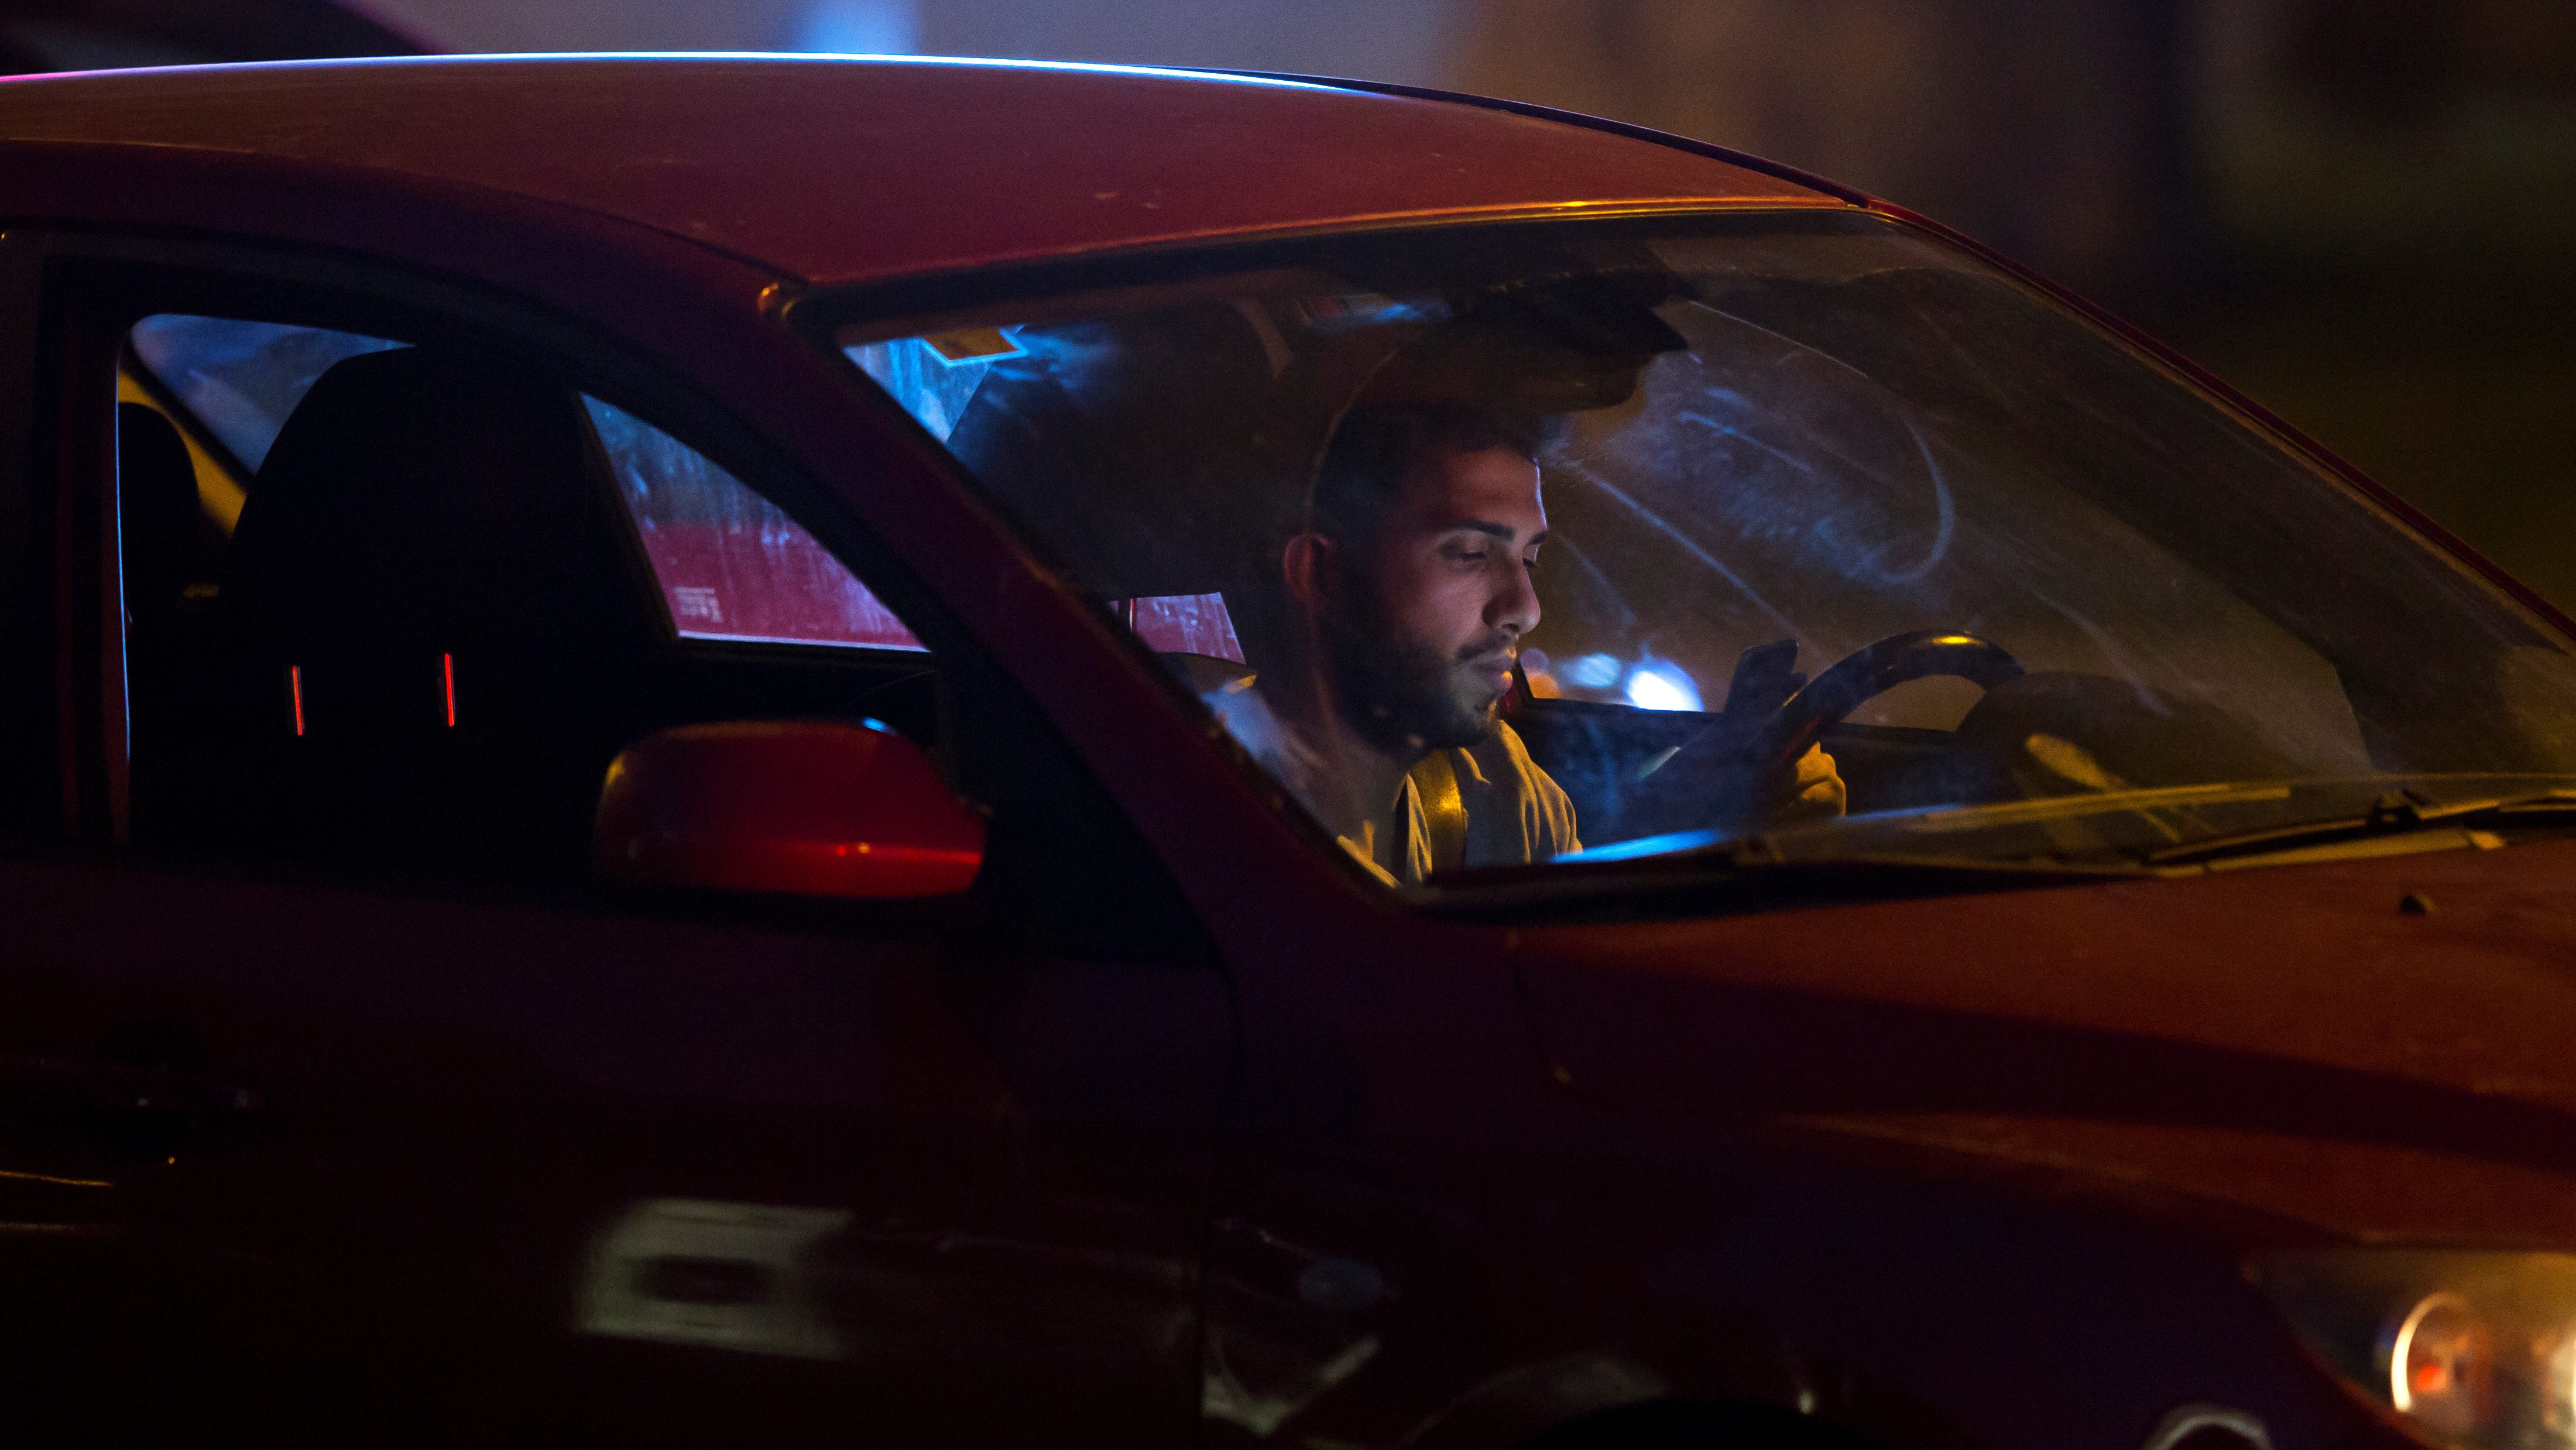 A man looks at his cell phone in a car in Madrid, Spain.